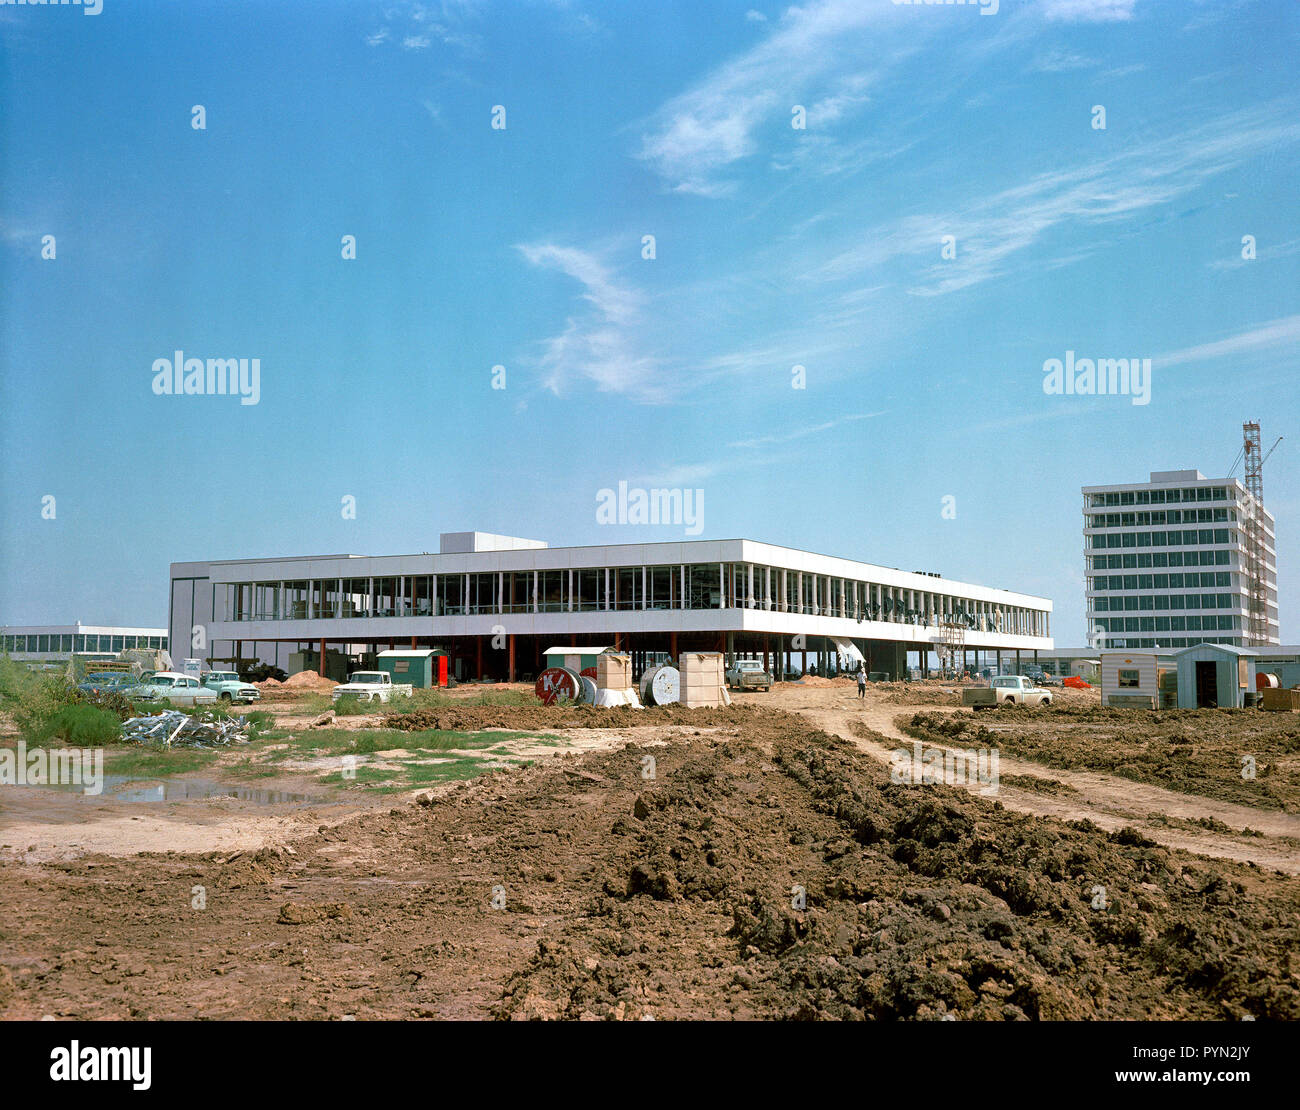 (25 Sept. 1963) --- This easterly view documents early construction of the Manned Spacecraft Center in September of 1963.  The Avionics Systems Laboratory (Building 16) is in the foreground and the Project Management Building is see in the right background. - Stock Image